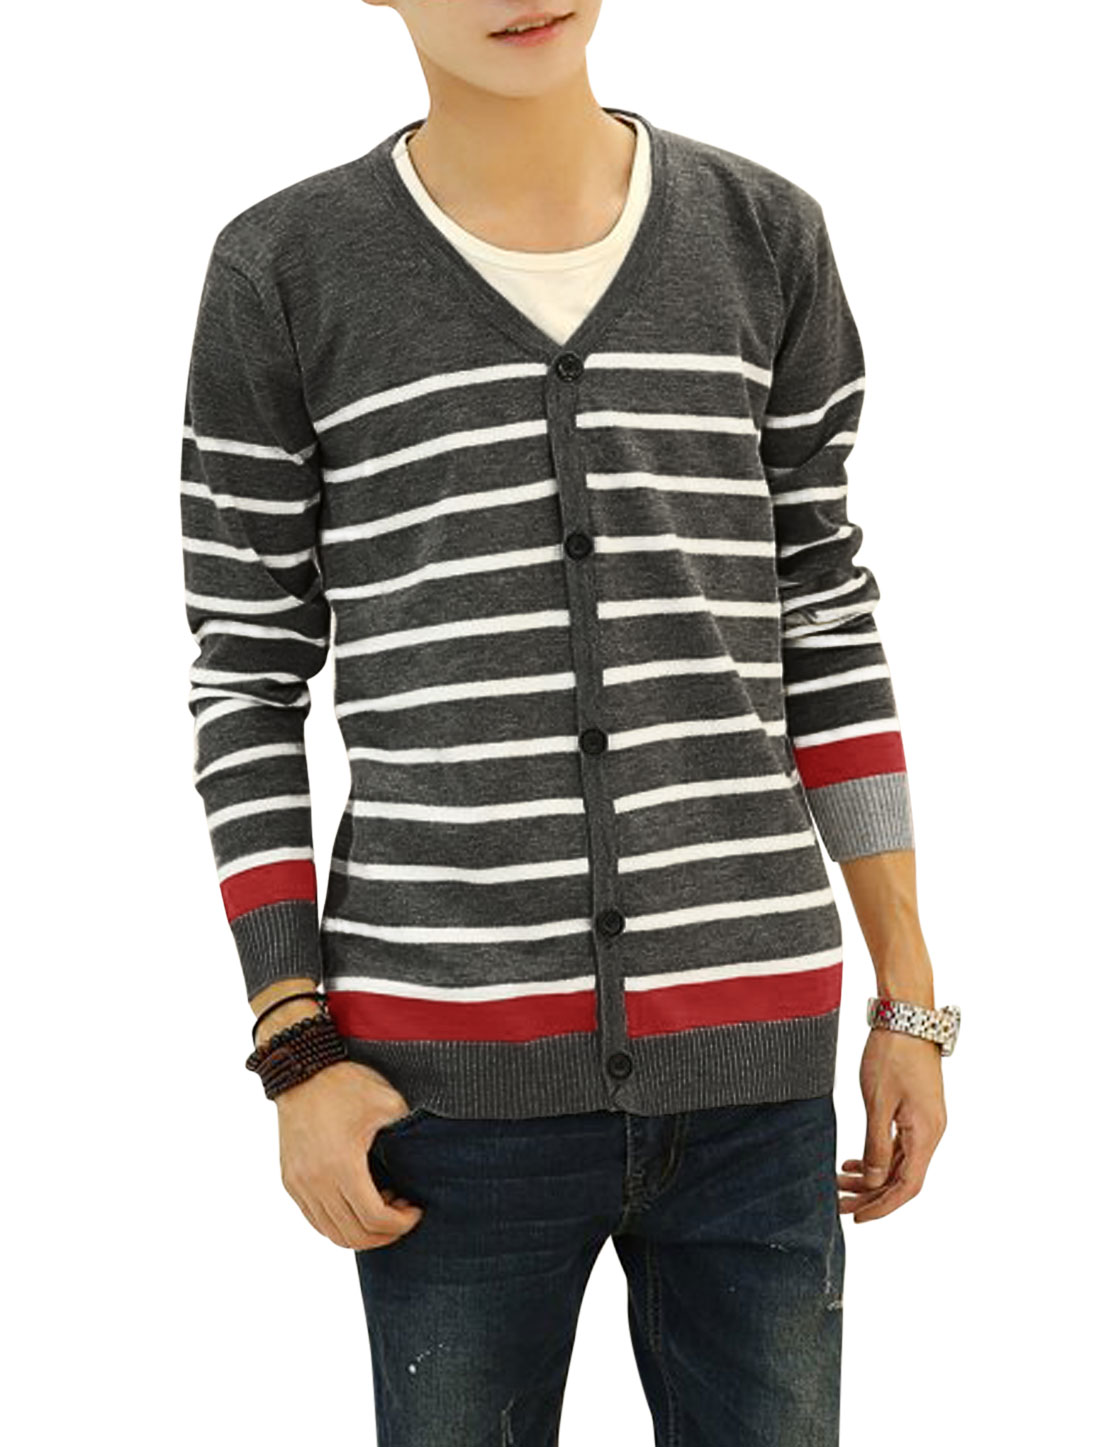 Button Closed Long Sleeves Leisure Knitted Cardigan for Men Dark Gray S